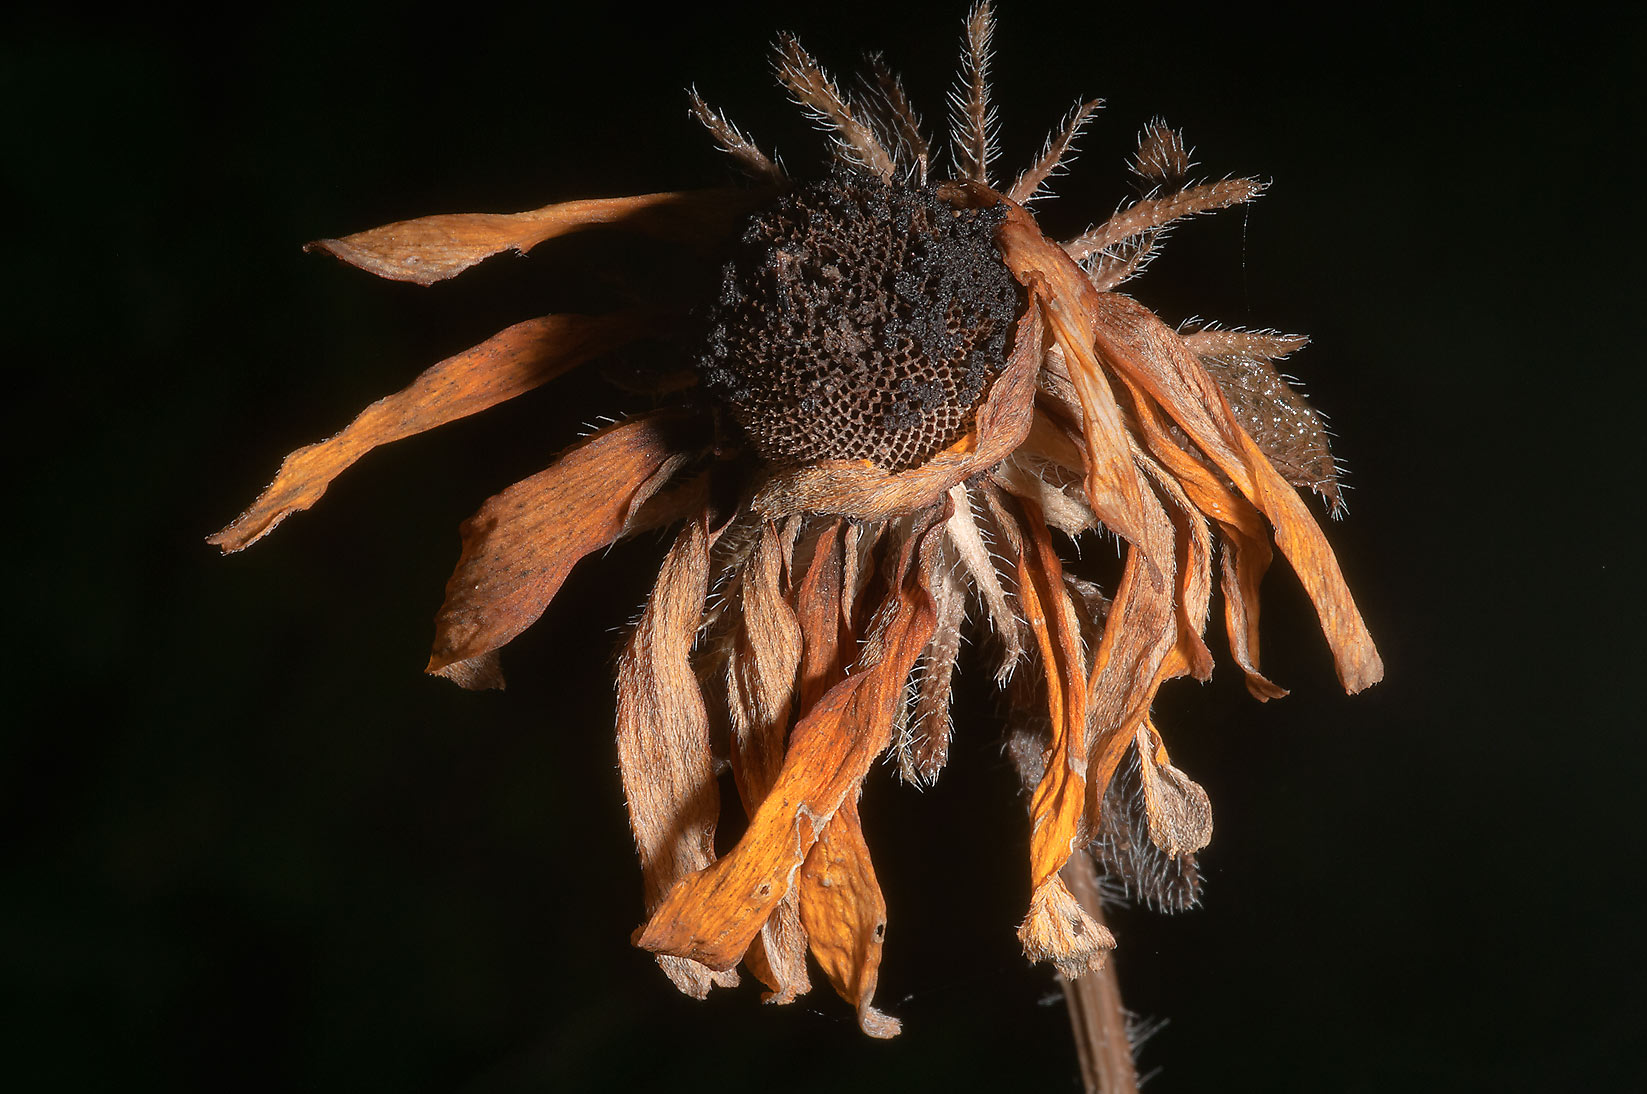 Drying head of black eyed susan flower in Lick Creek Park. College Station, Texas